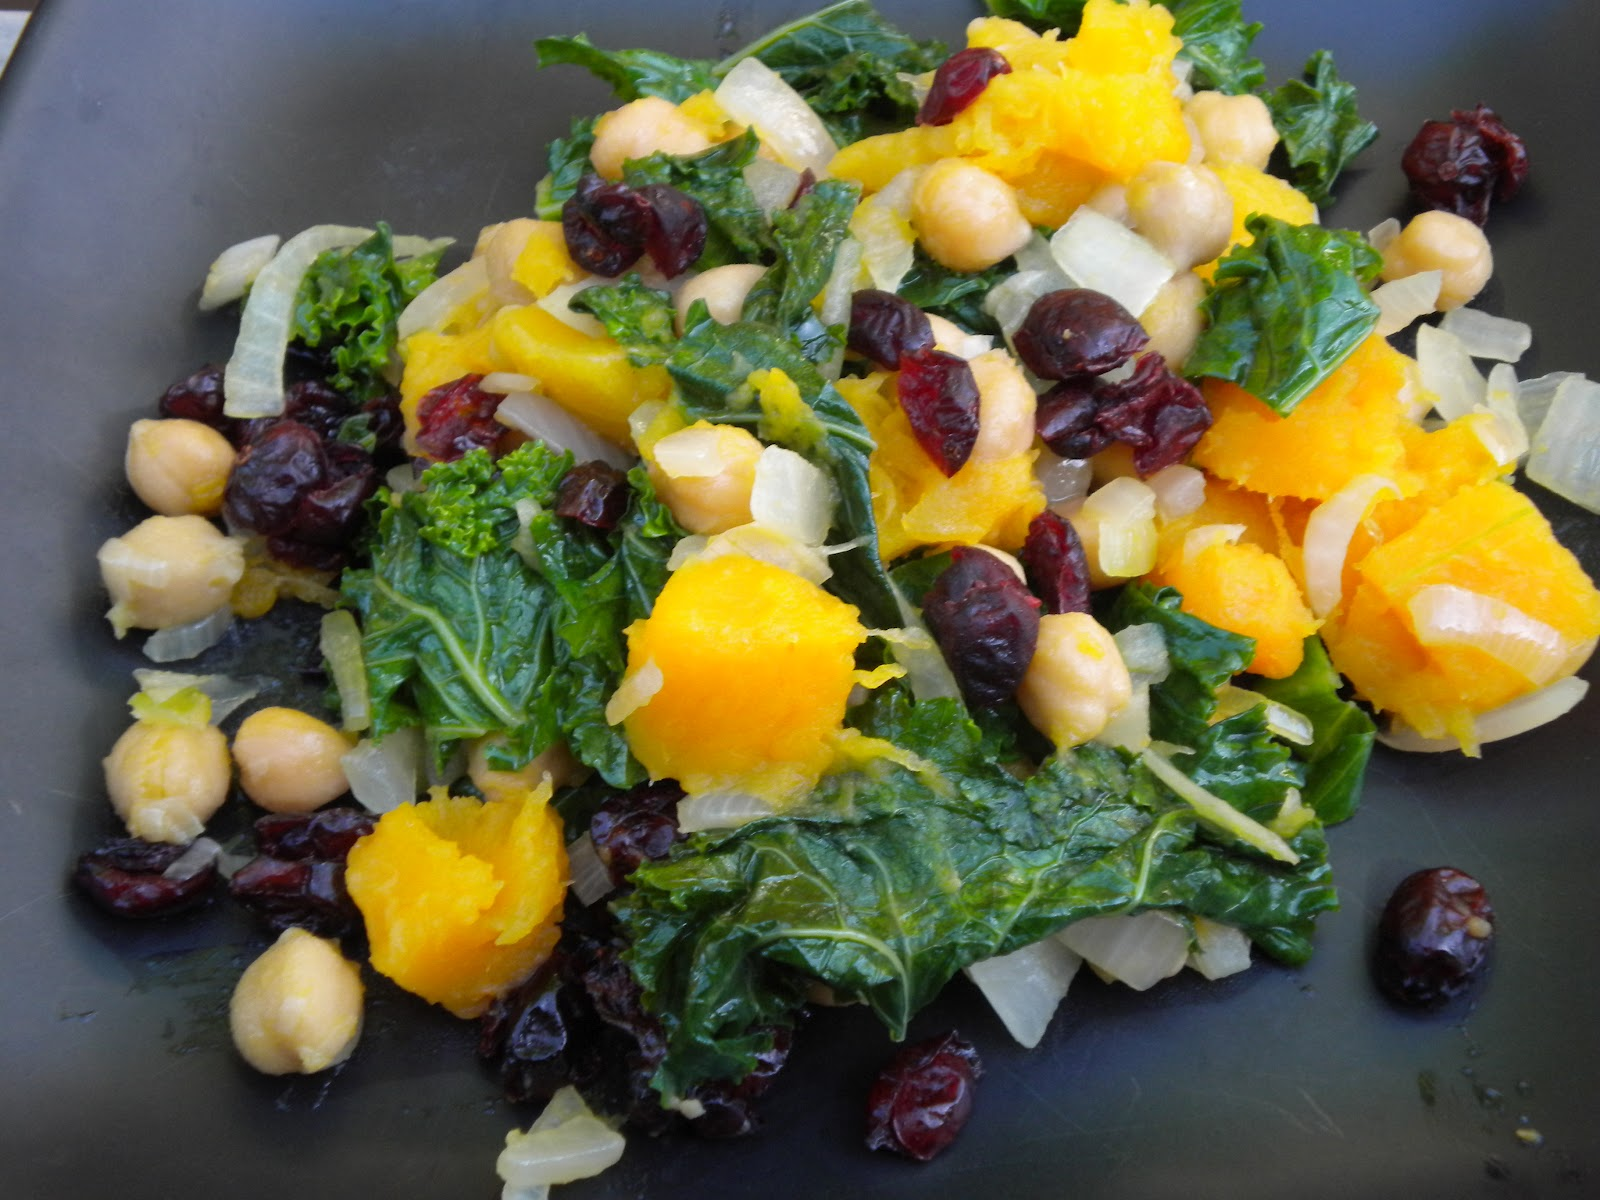 Summy's Yummies: Ginger-Lemon Kale with Squash and Chickpeas